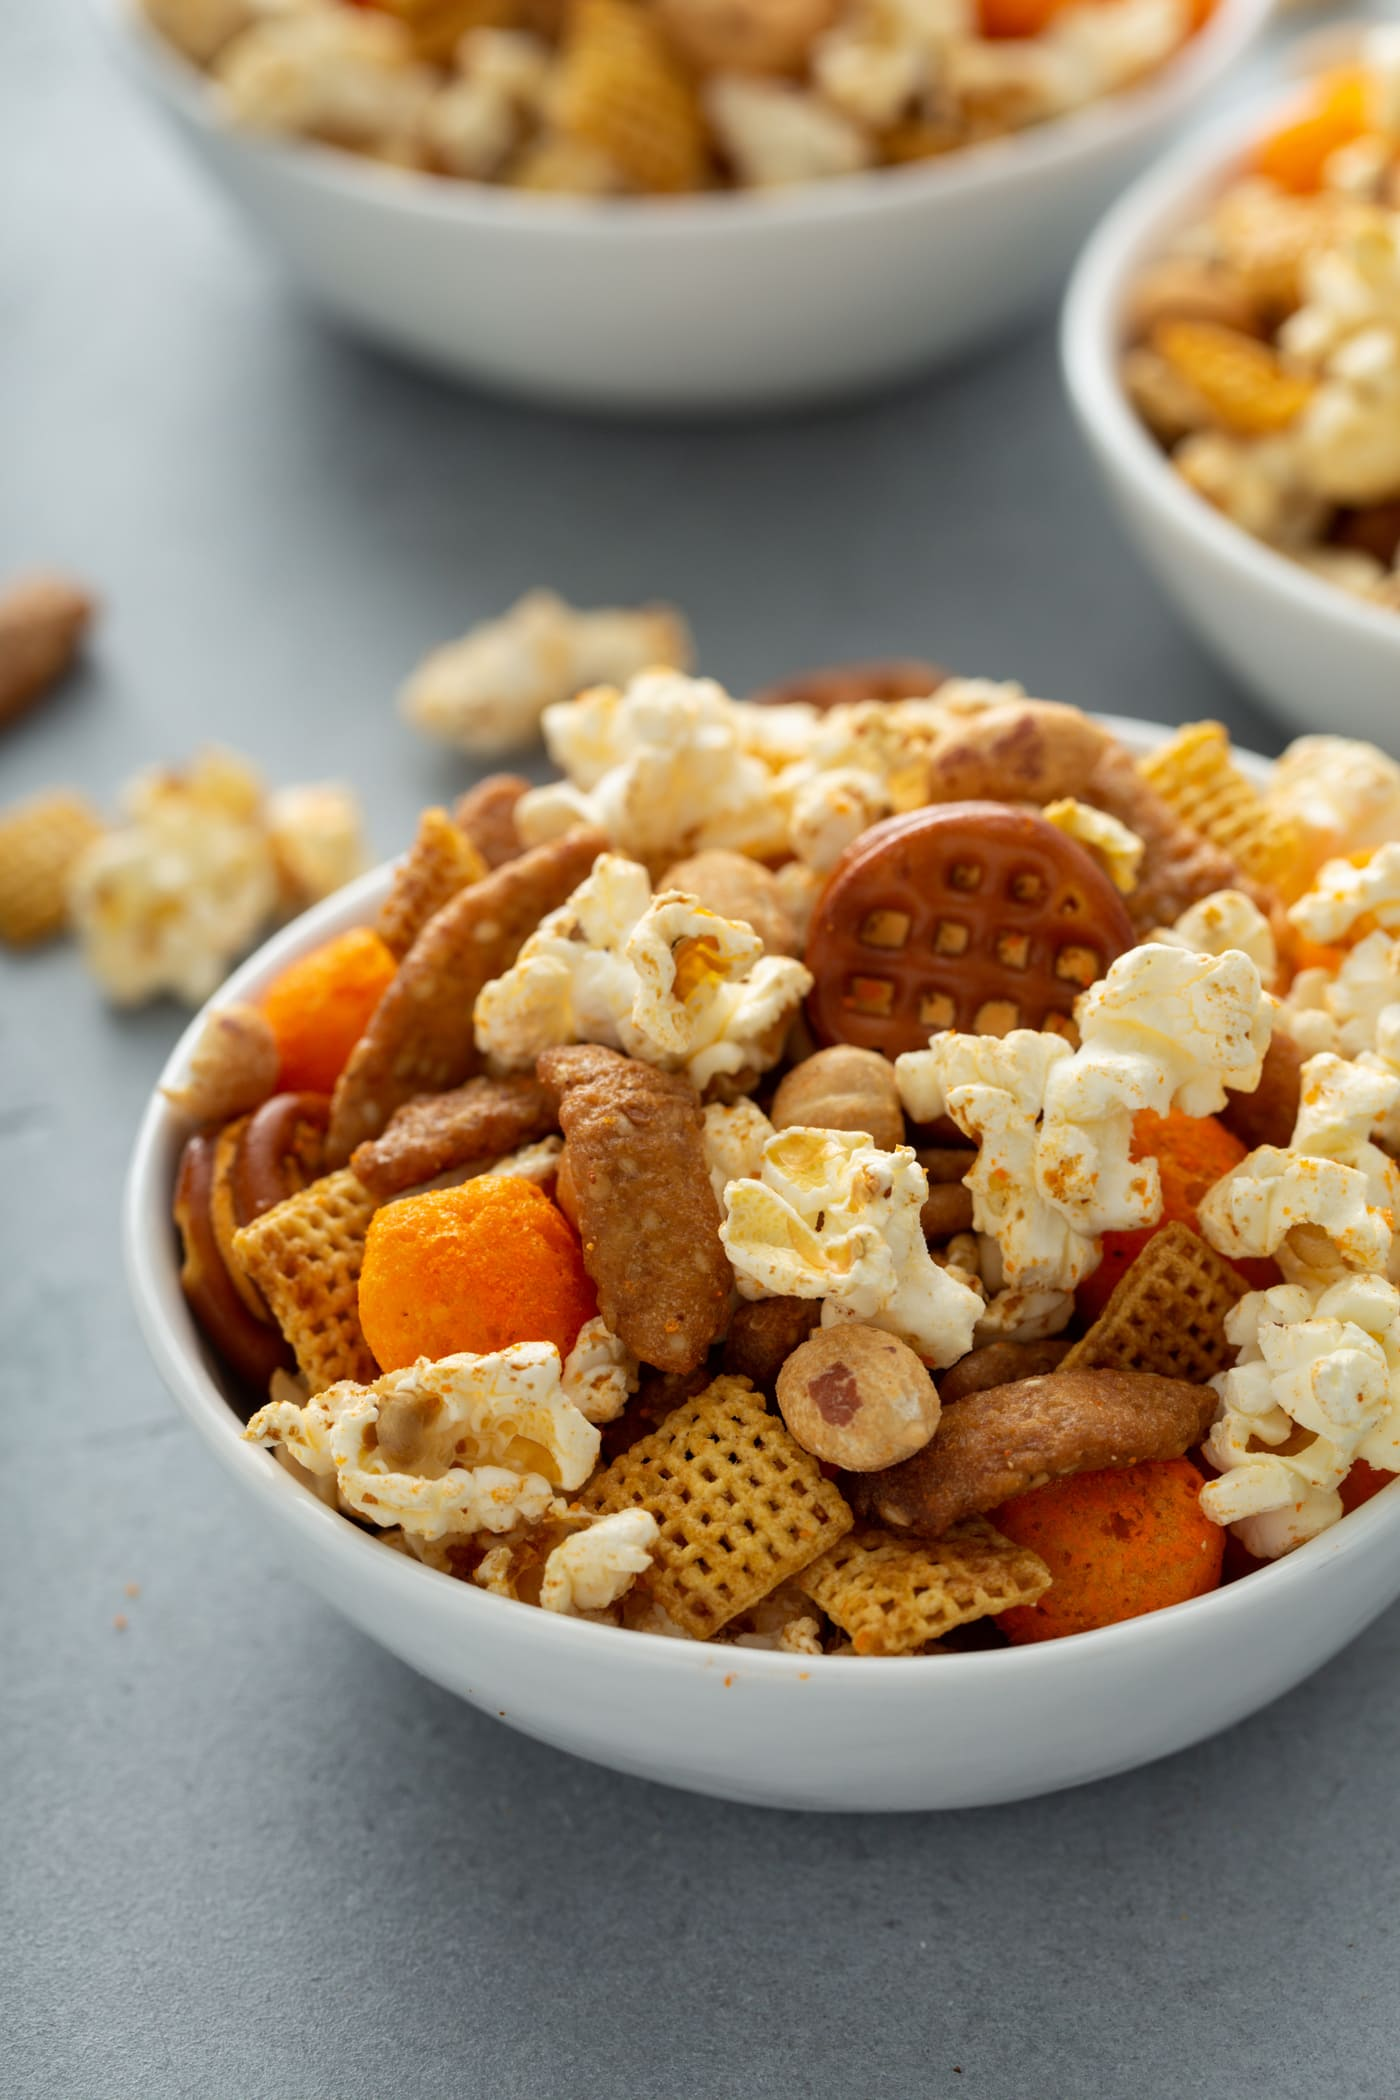 A bowl of savory March madness snack mix. It has popcorn, peanuts, chex, pretzels, and sesame sticks. There are other bowls of mix in the background.